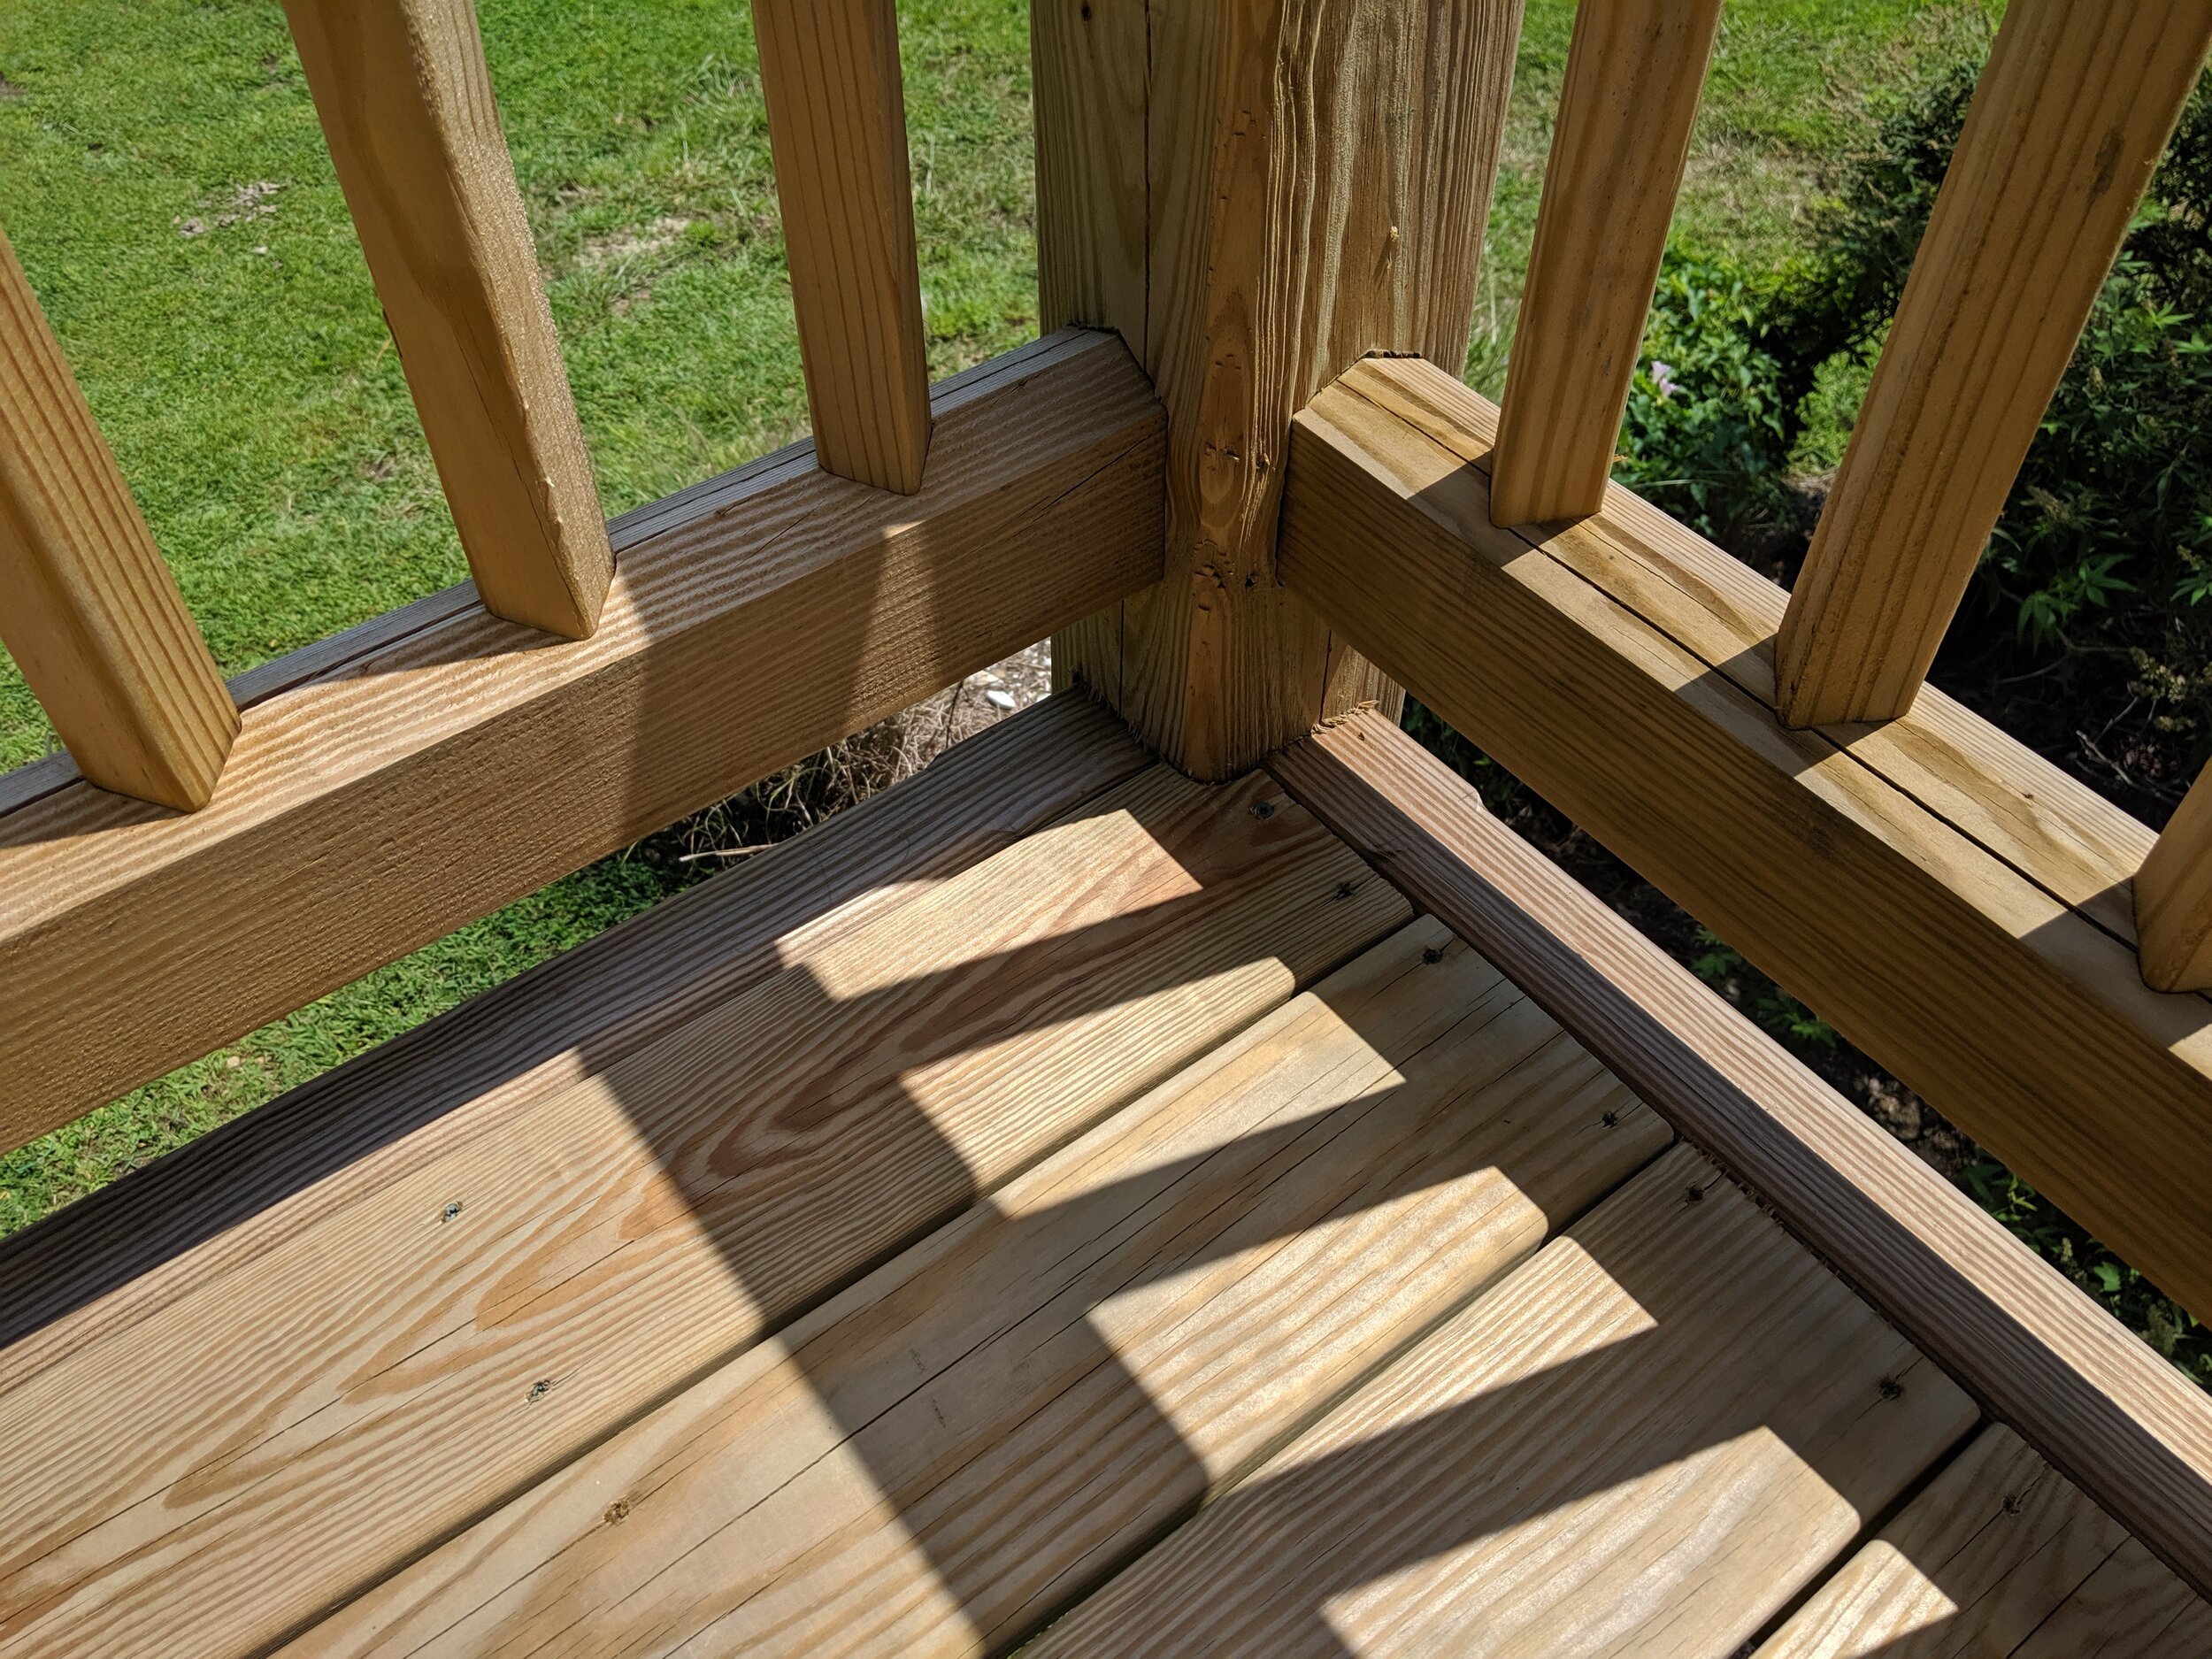 a close up of a typical railing-to-post connection featuring rotated pickets. note the slight angle at the top of the bottom rail, which helps shed water off of the railing